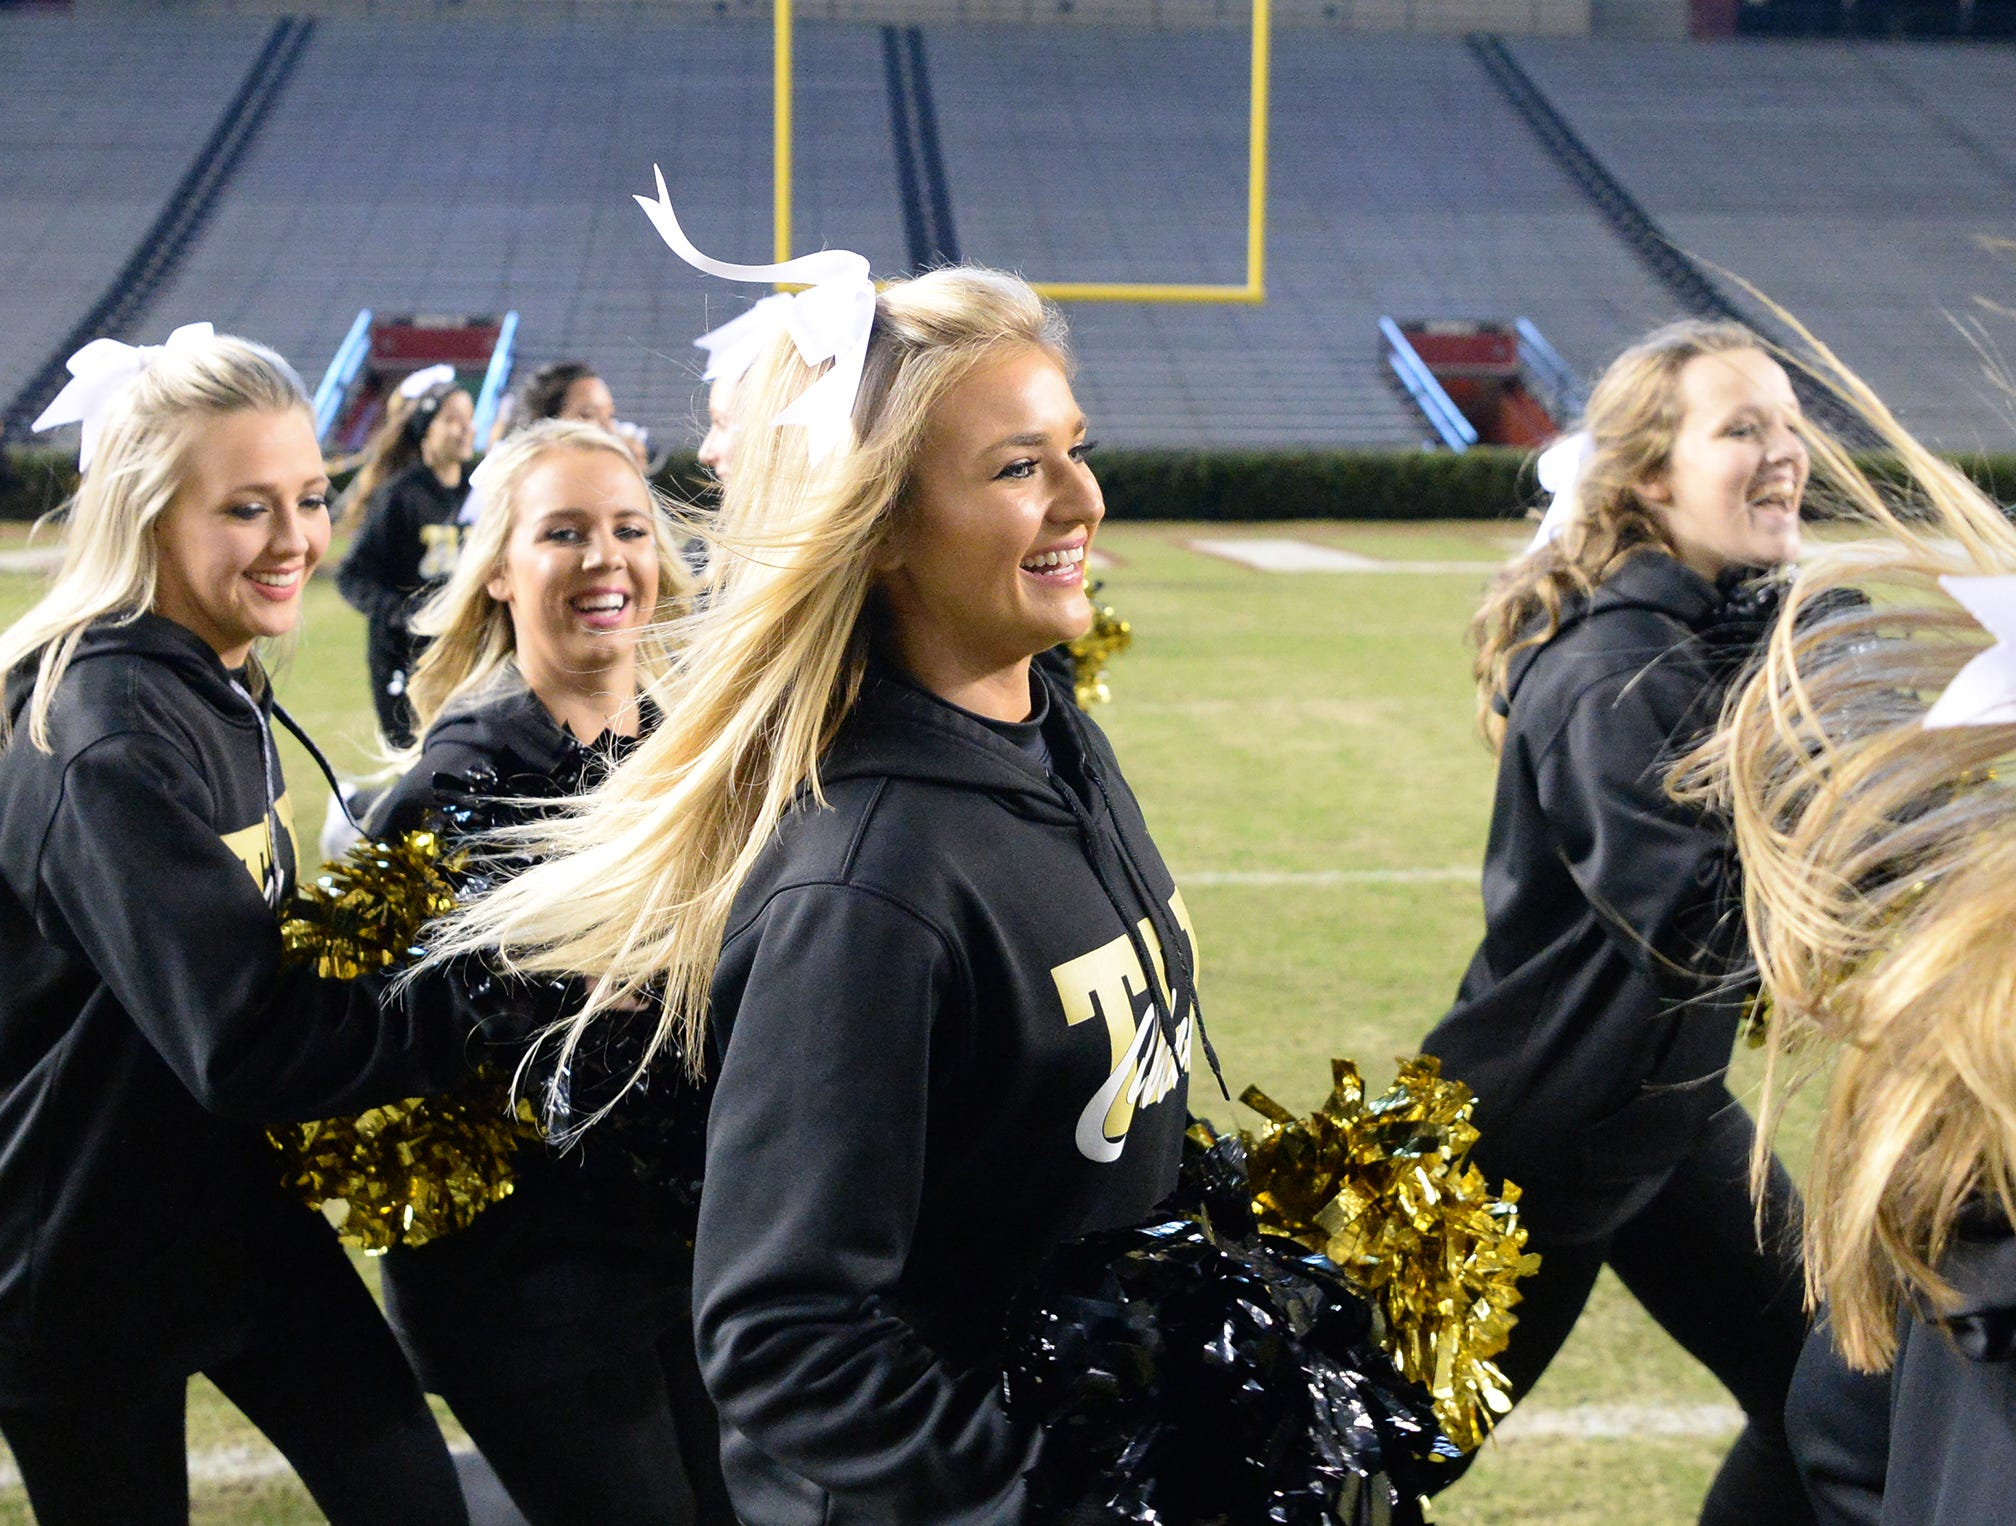 TL Hanna cheerleaders run after the team breaks through the banner before the kickoff of the Class AAAAA state championship game at Williams-Brice Stadium in Columbia Saturday, December 8, 2018.